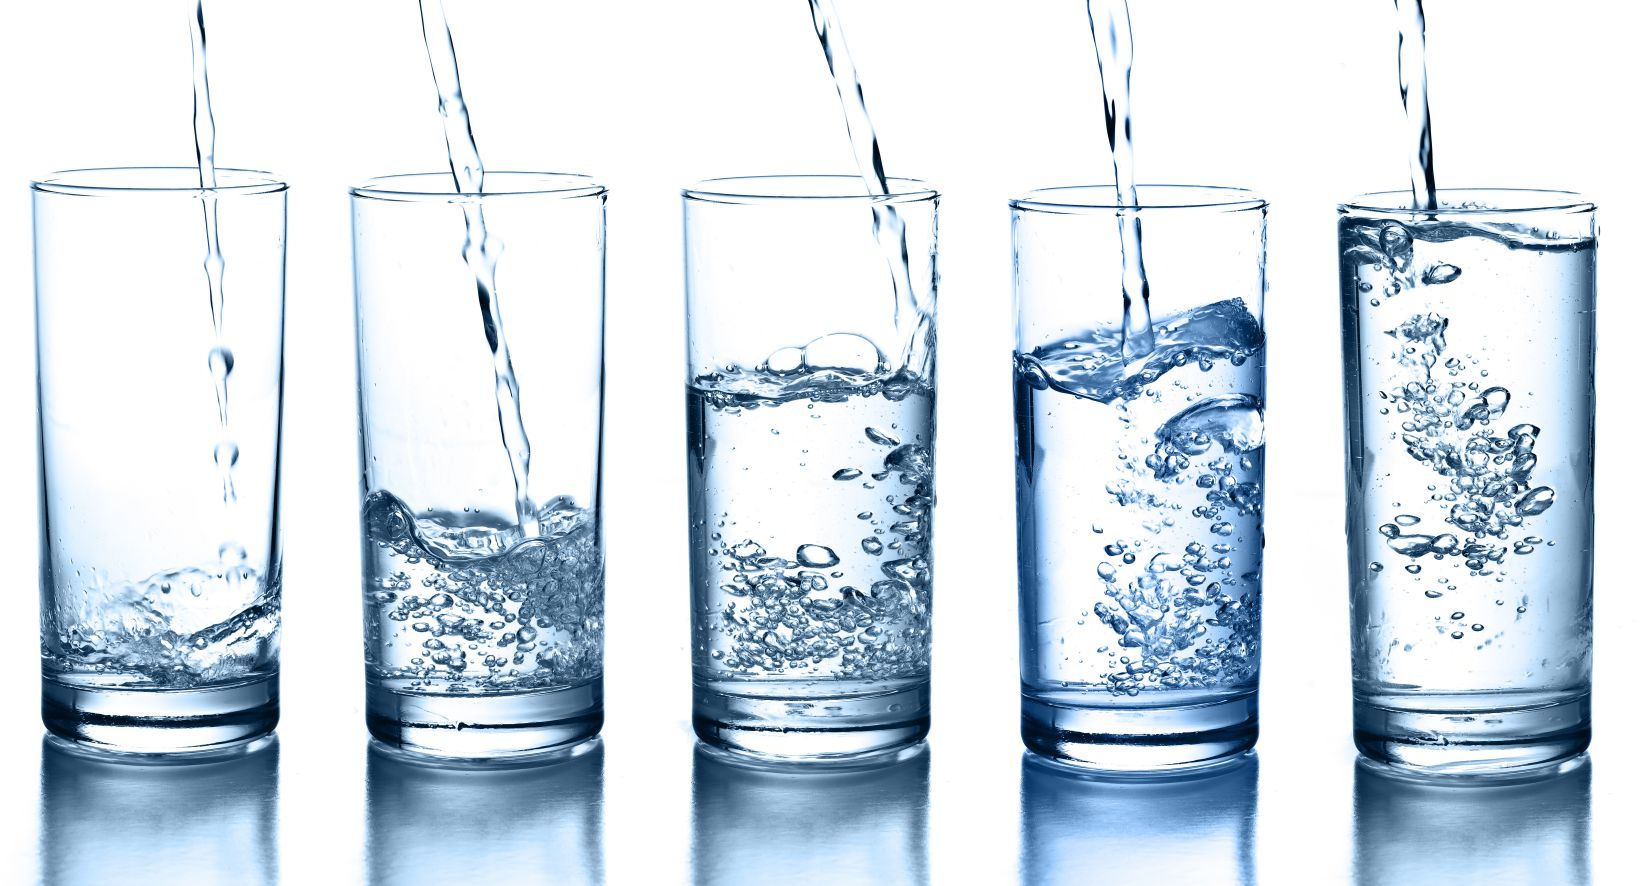 water fasting image